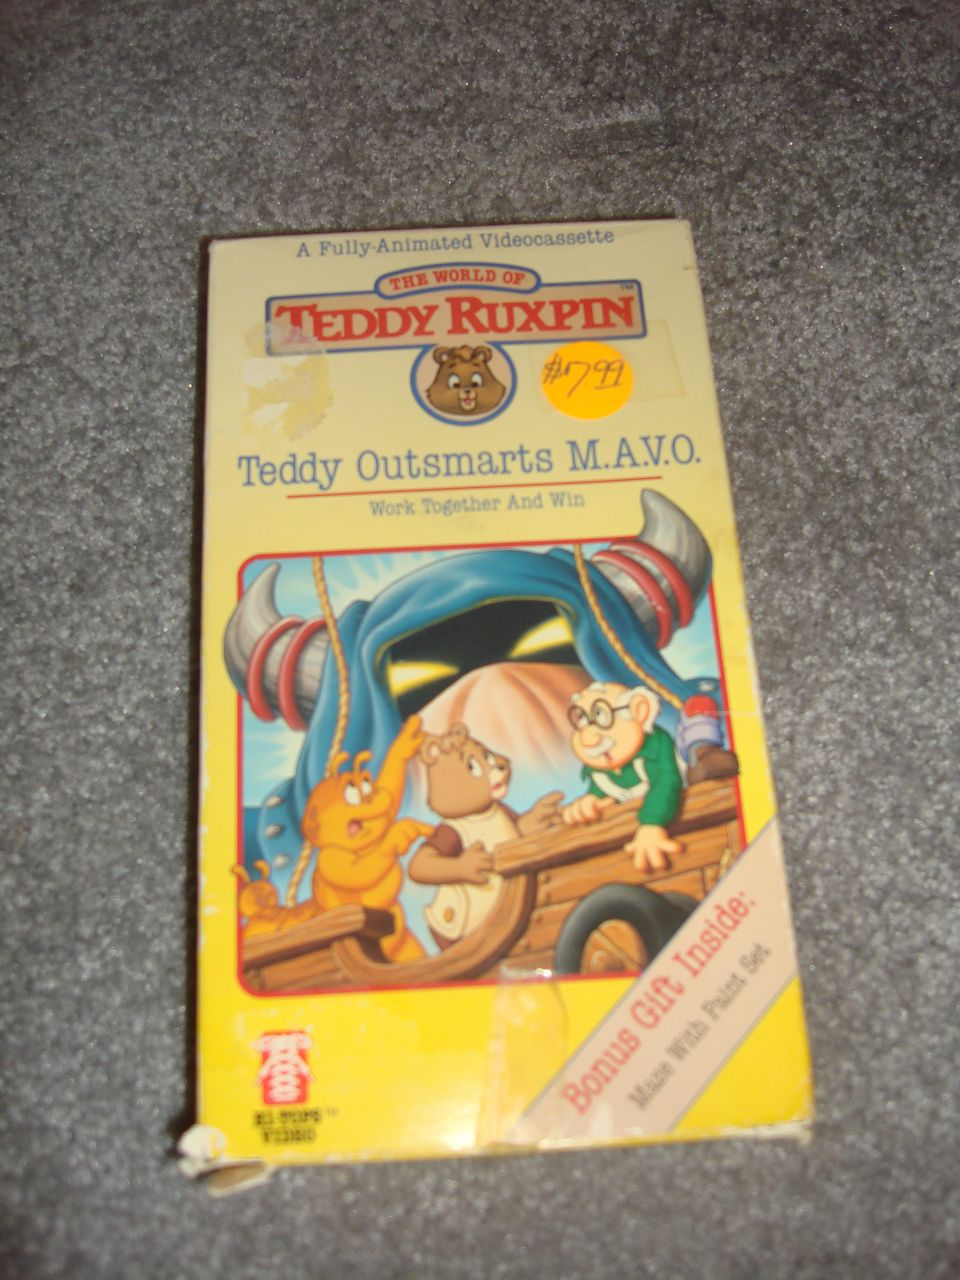 "MIB Video Cassette called ""Teddy Outsmarts M.A.V.O."""